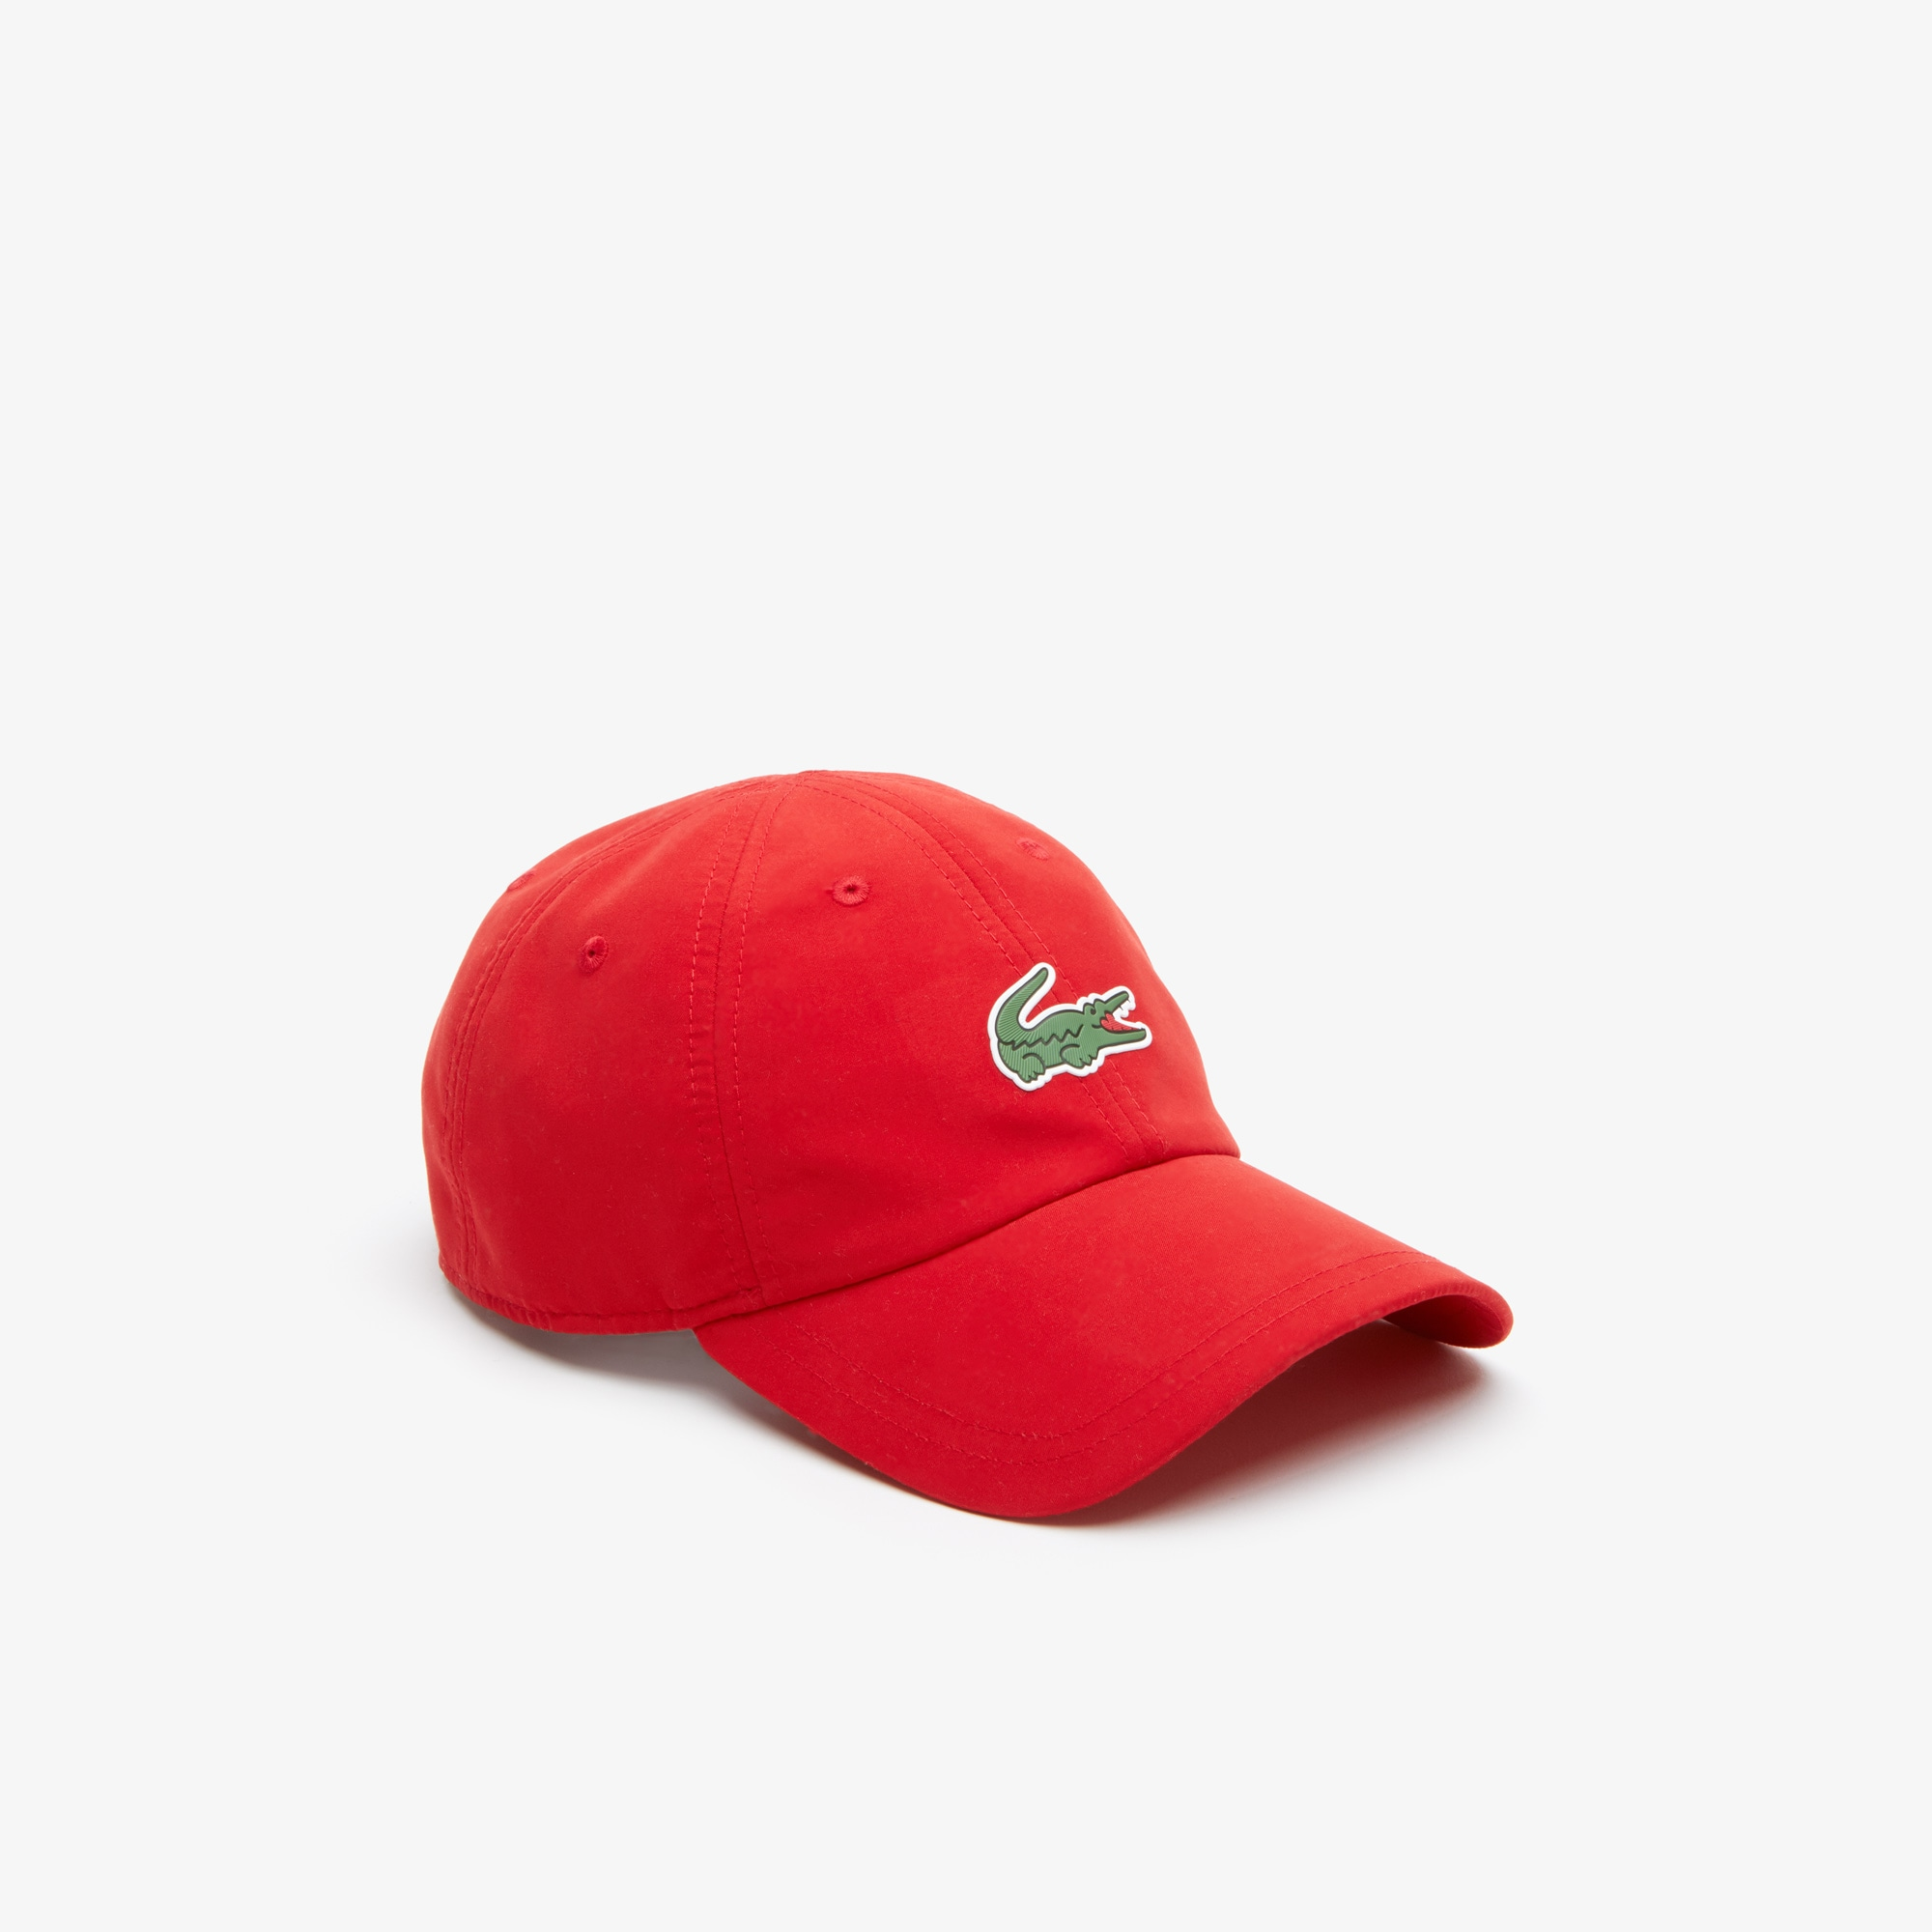 라코스테 Lacoste Mens SPORT Tennis Microfiber Crocodile Cap,red